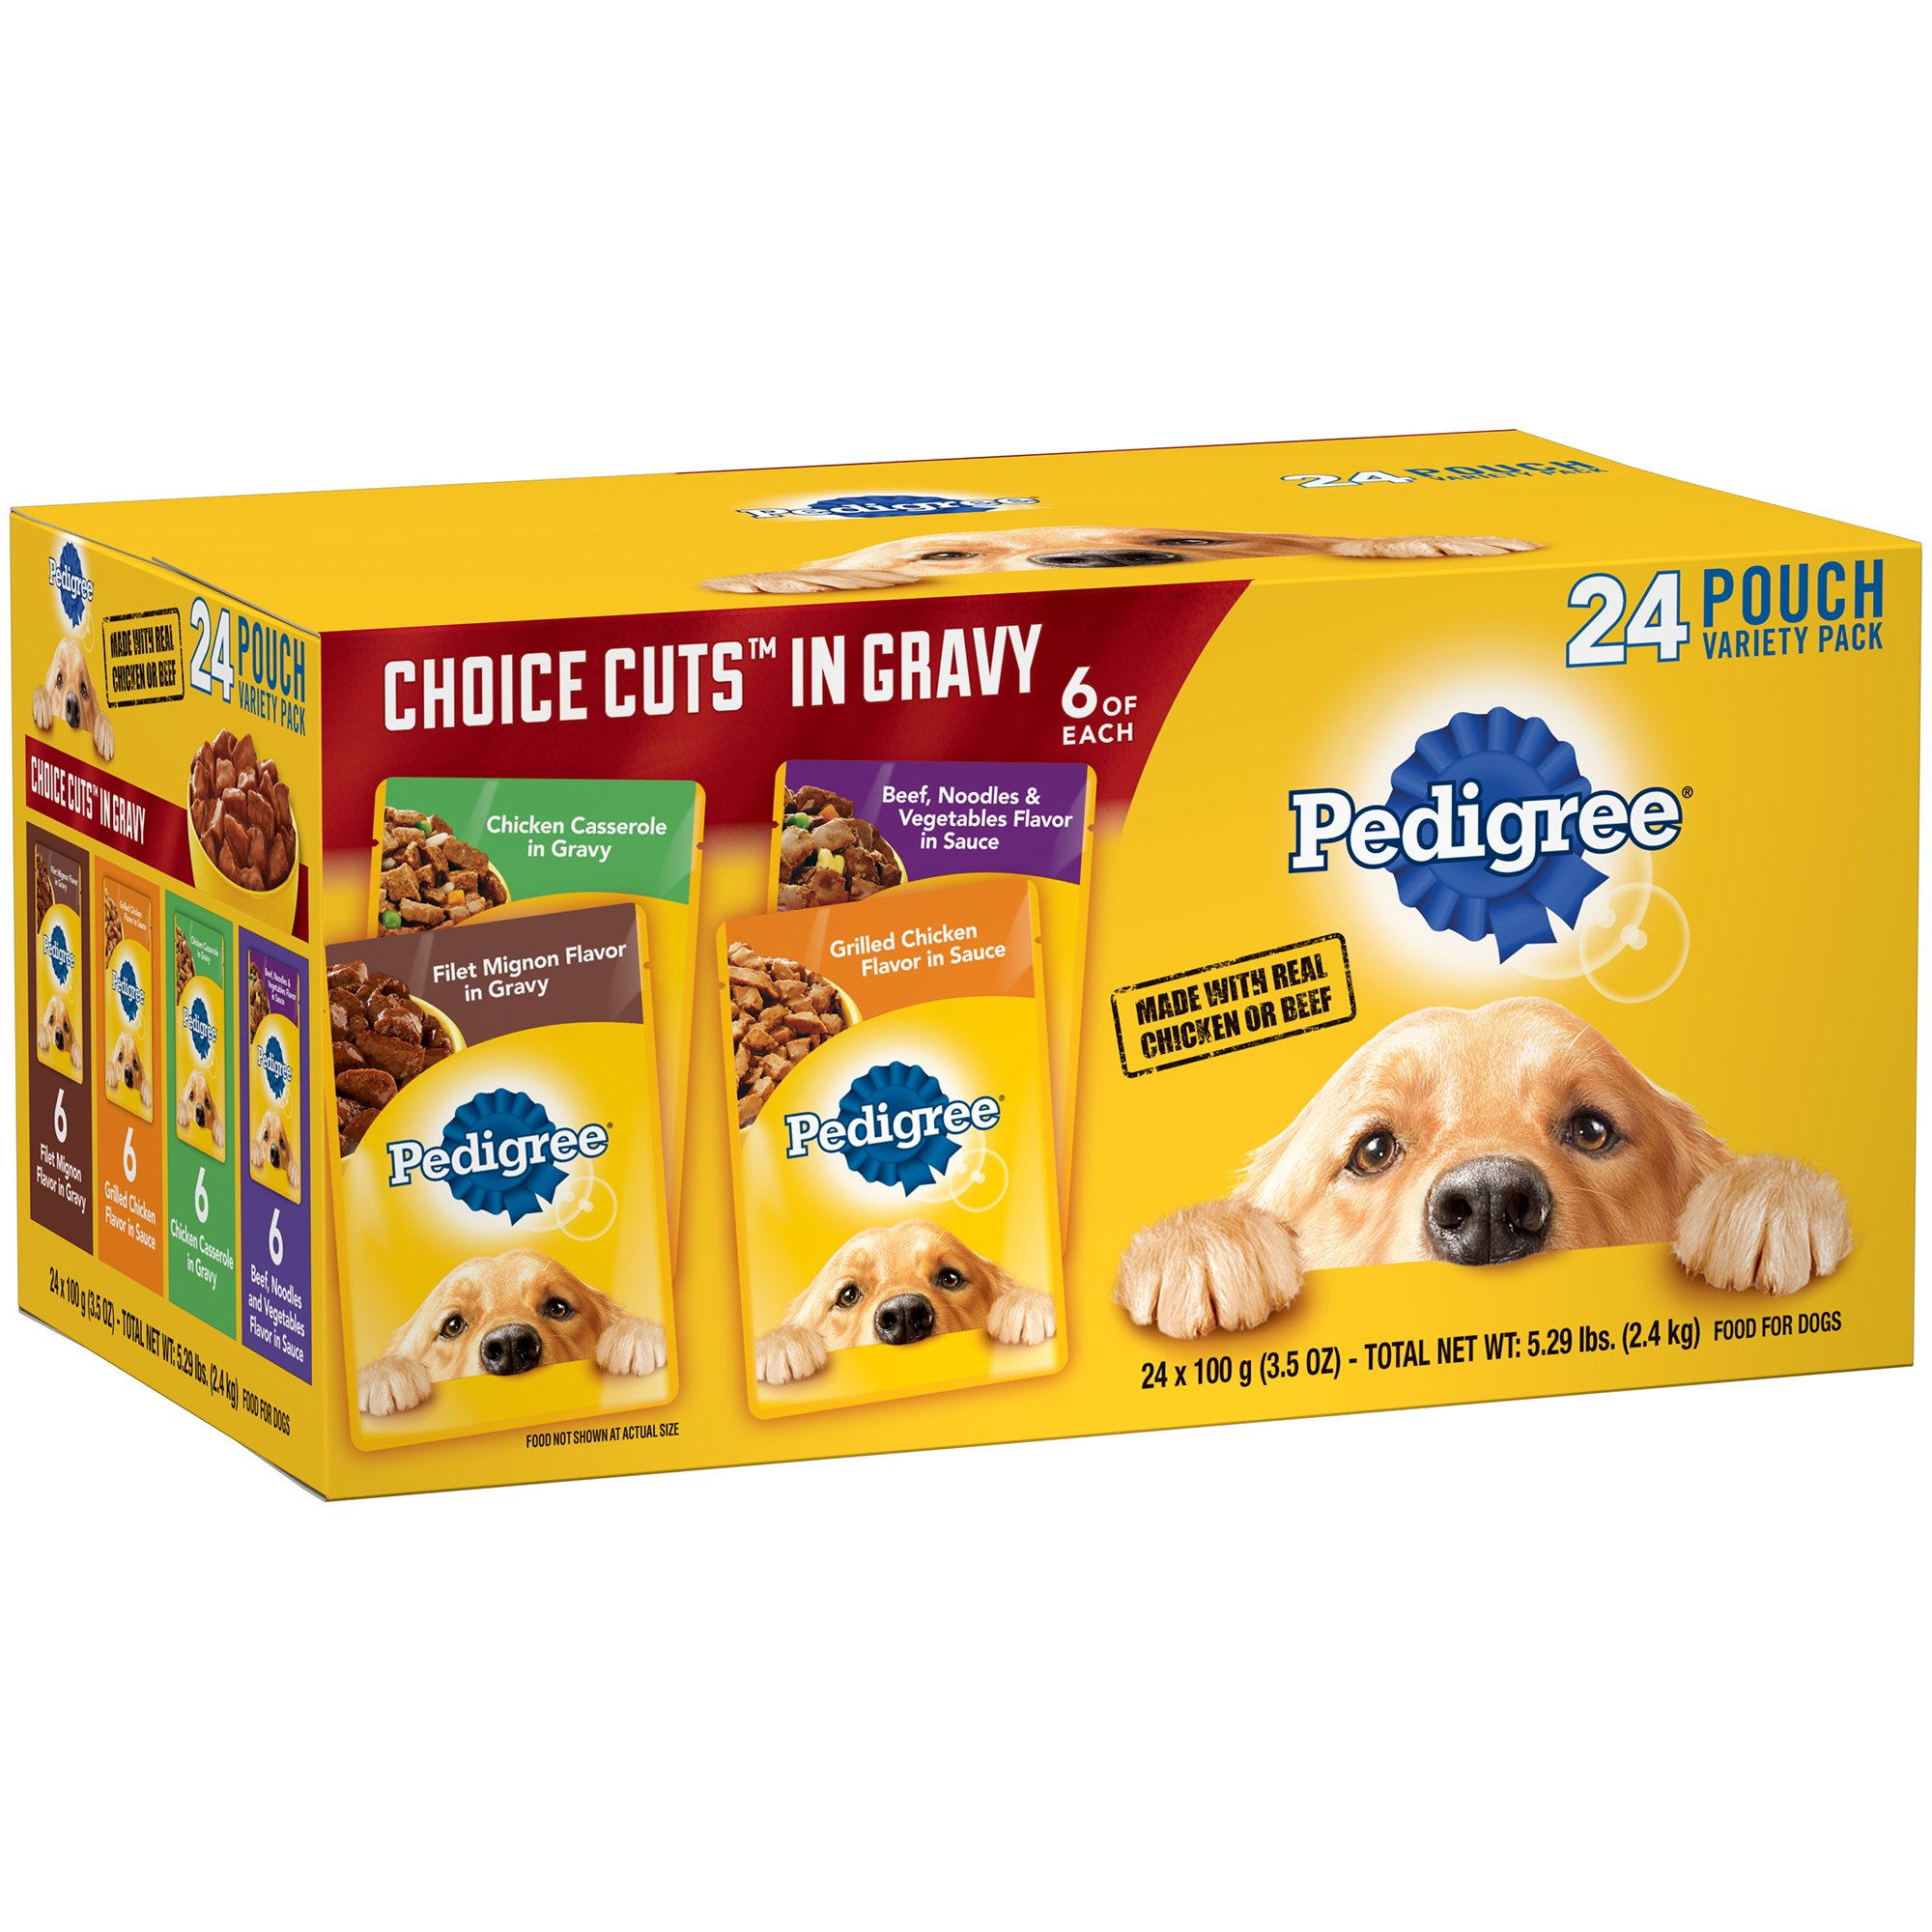 Pedigree Choice Cuts In Gravy Adult Wet Dog Food Variety Pack, (24) 3.5 Oz. Pouches by Pedigree